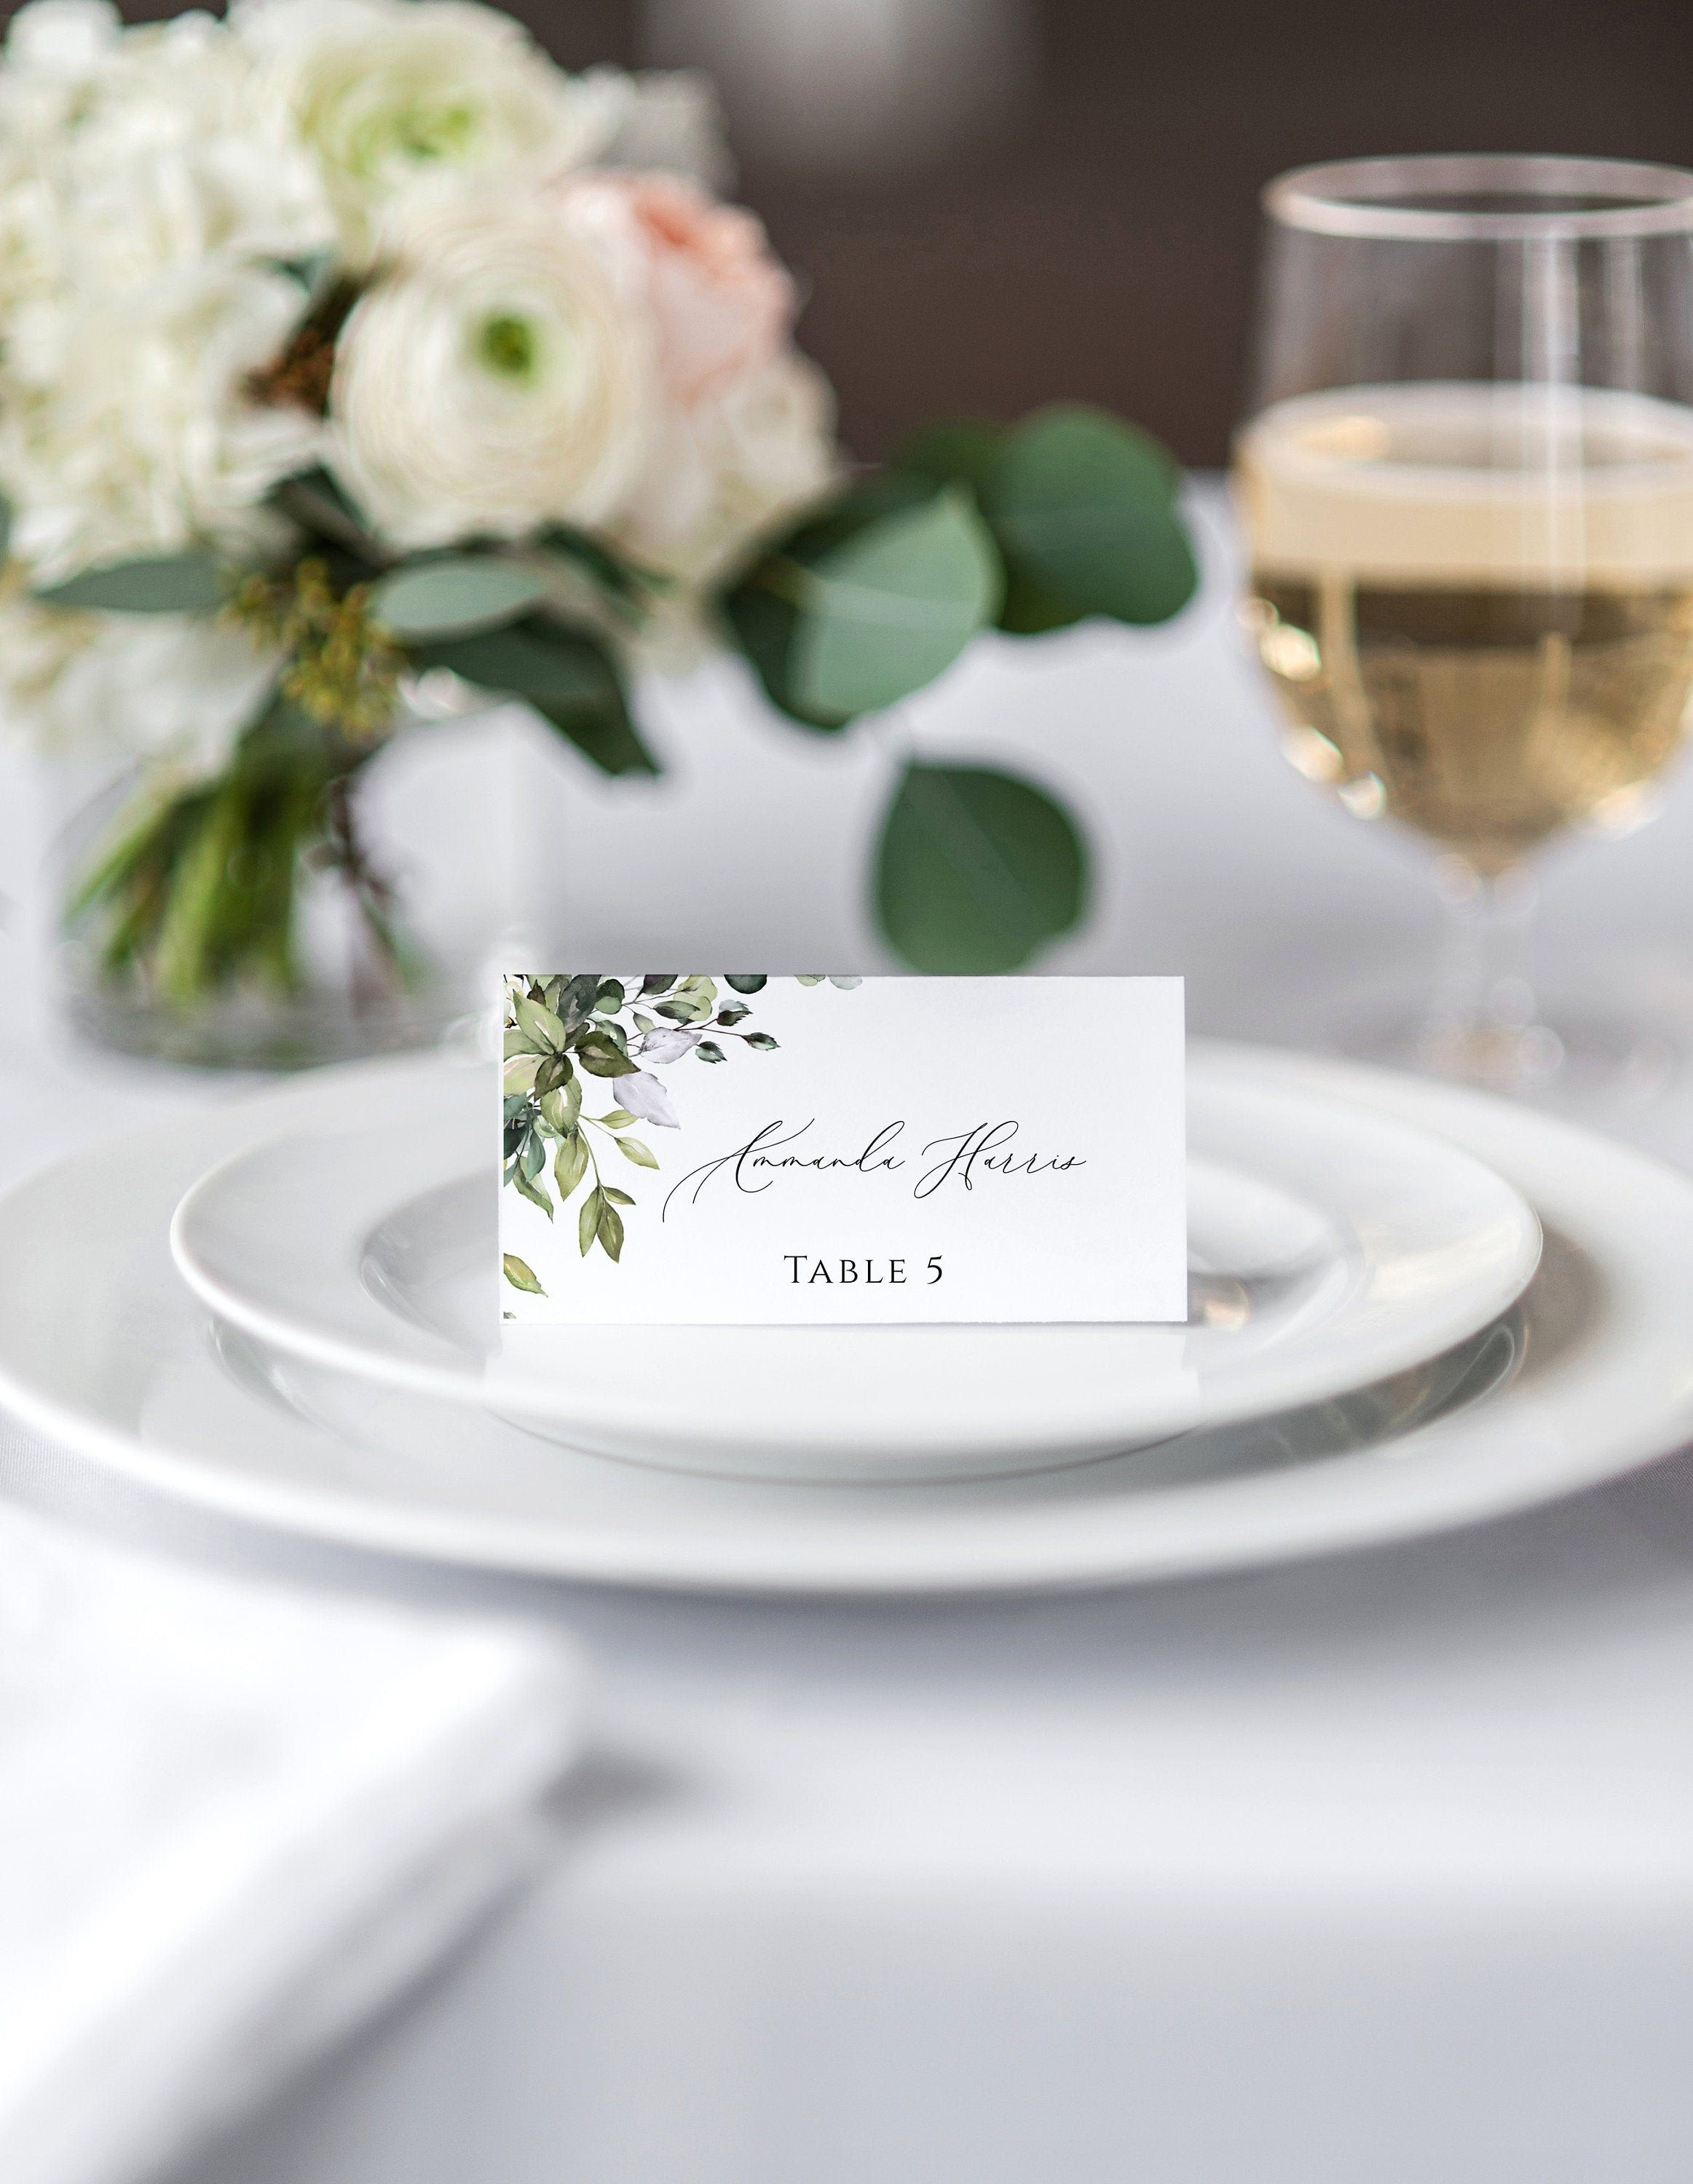 Greenery Place Card Template Download Garden Wedding Name Card Template Editable Table Pl Wedding Place Card Templates Wedding Place Cards Wedding Name Cards